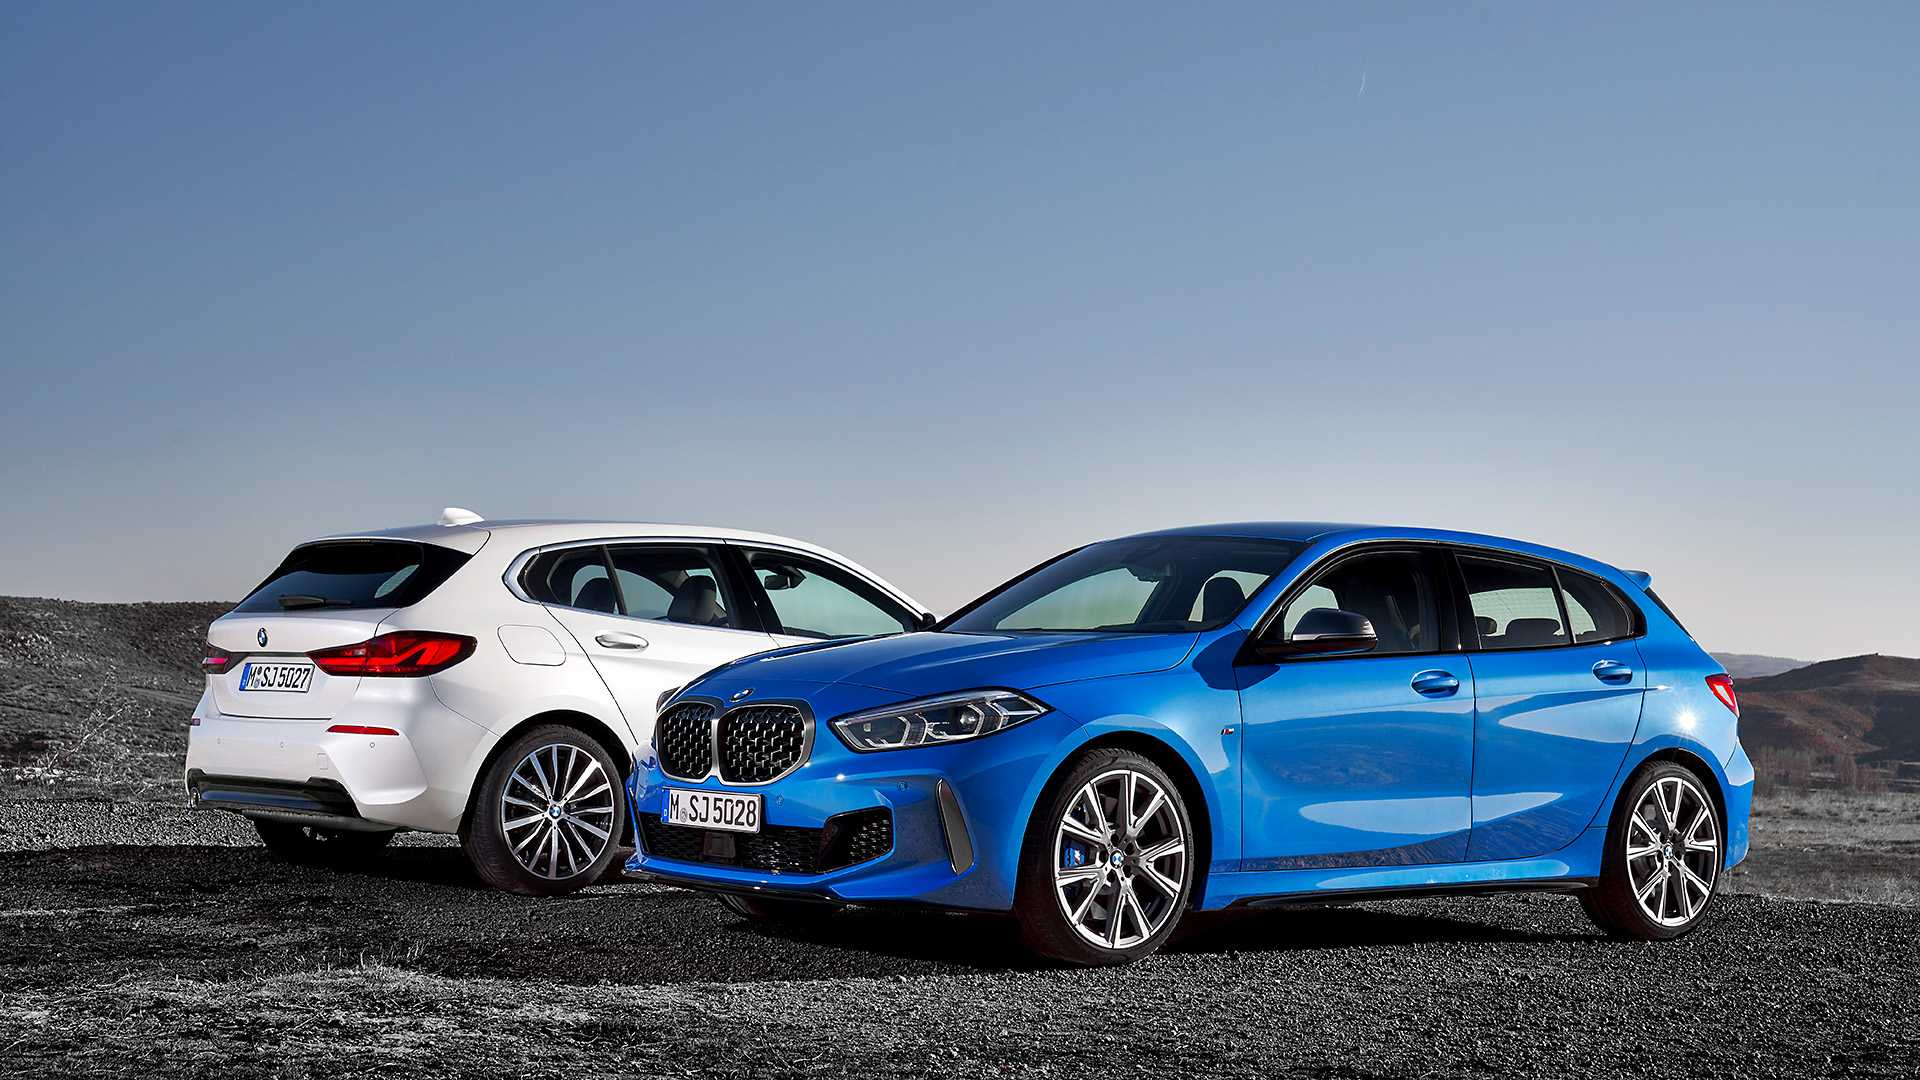 63 All New Yeni Bmw 1 Serisi 2020 Model